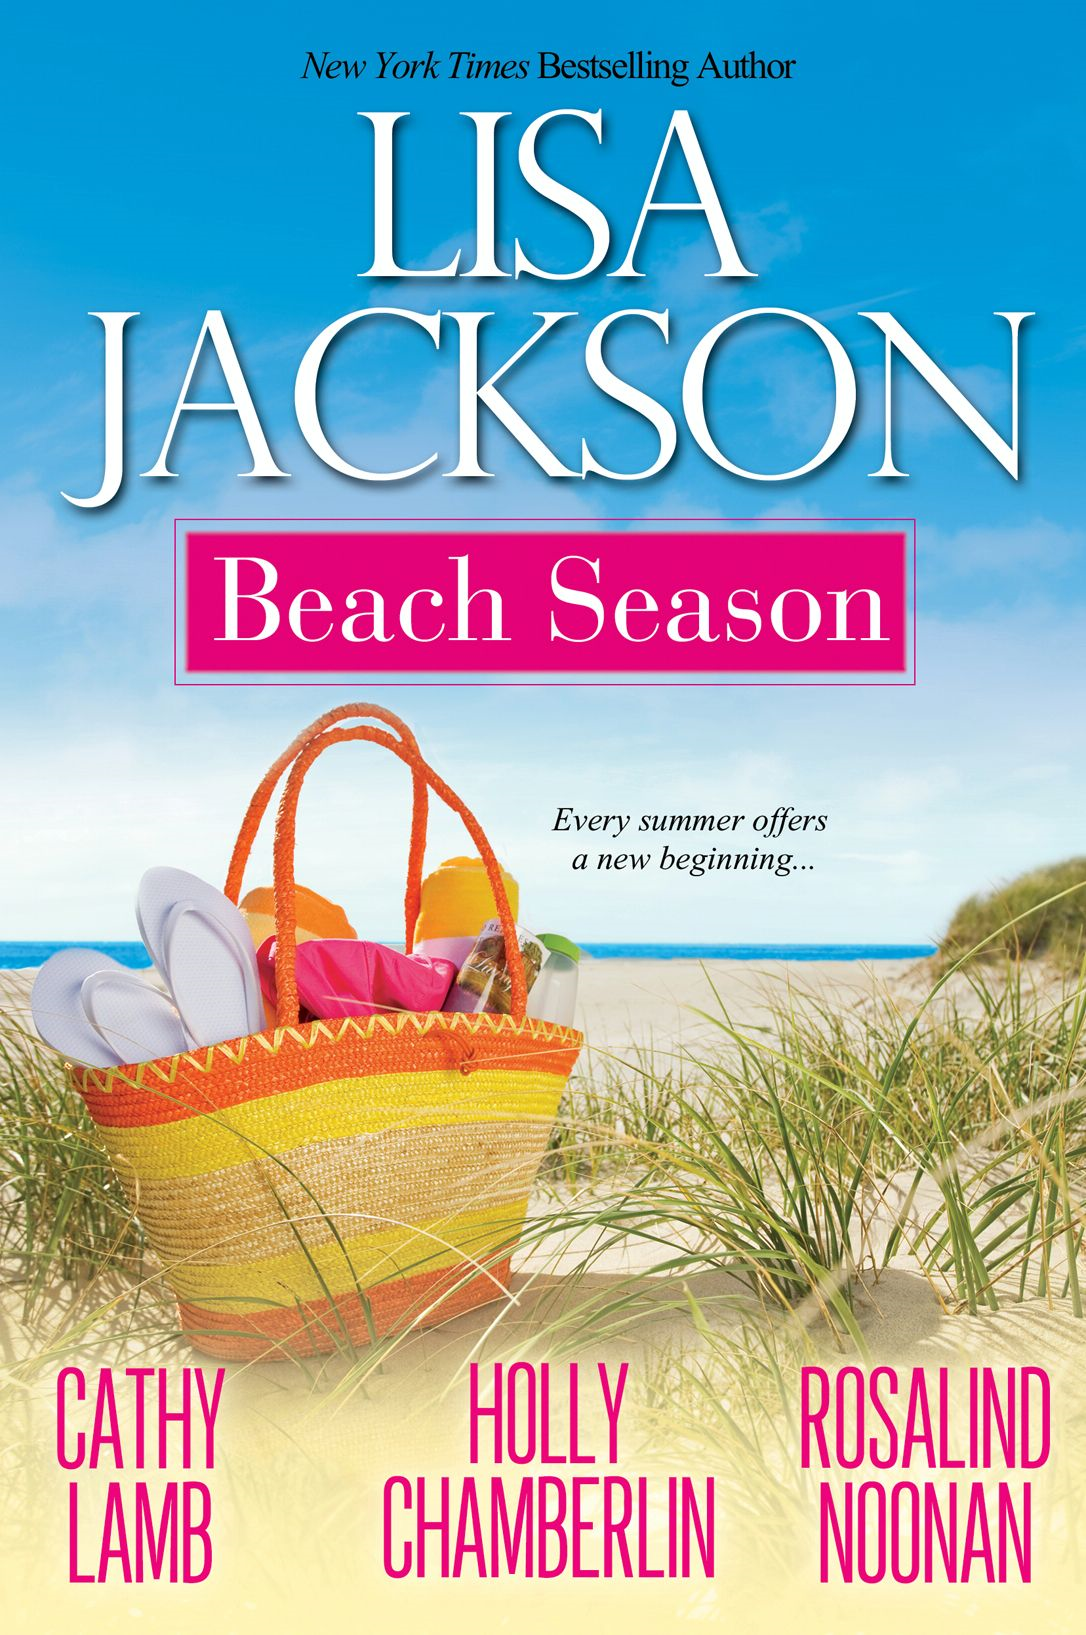 Beach Season By: Lisa Jackson;Cathy Lamb;Holly Chamberlin;Rosalind Noonan